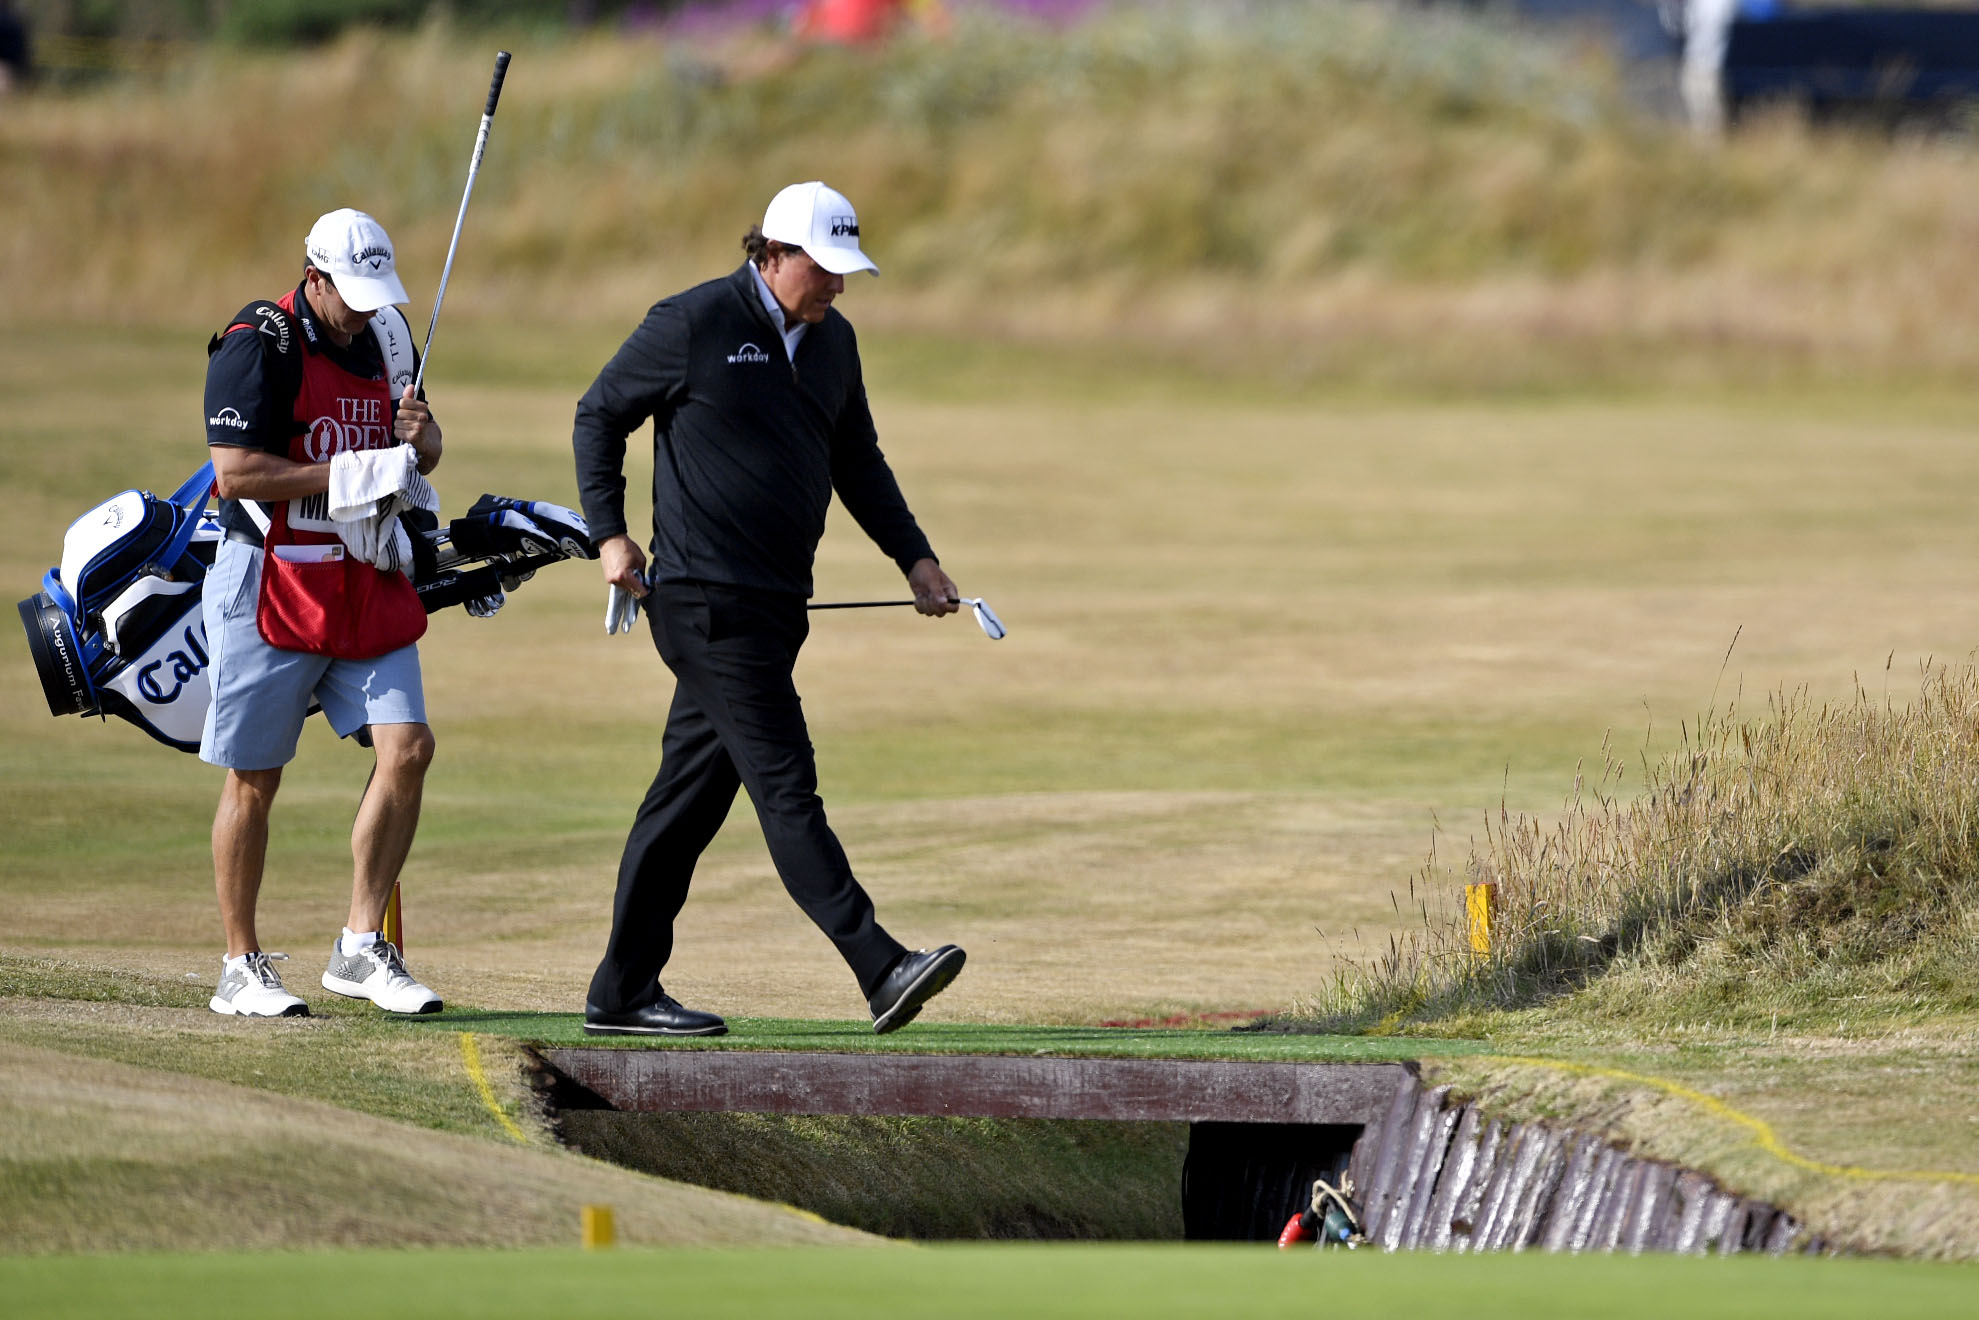 Phil Mickelson walked the plank on Thursday, shooting a 73 in Round 1 of the Open. (Steven Flynn/USA TODAY Sports)